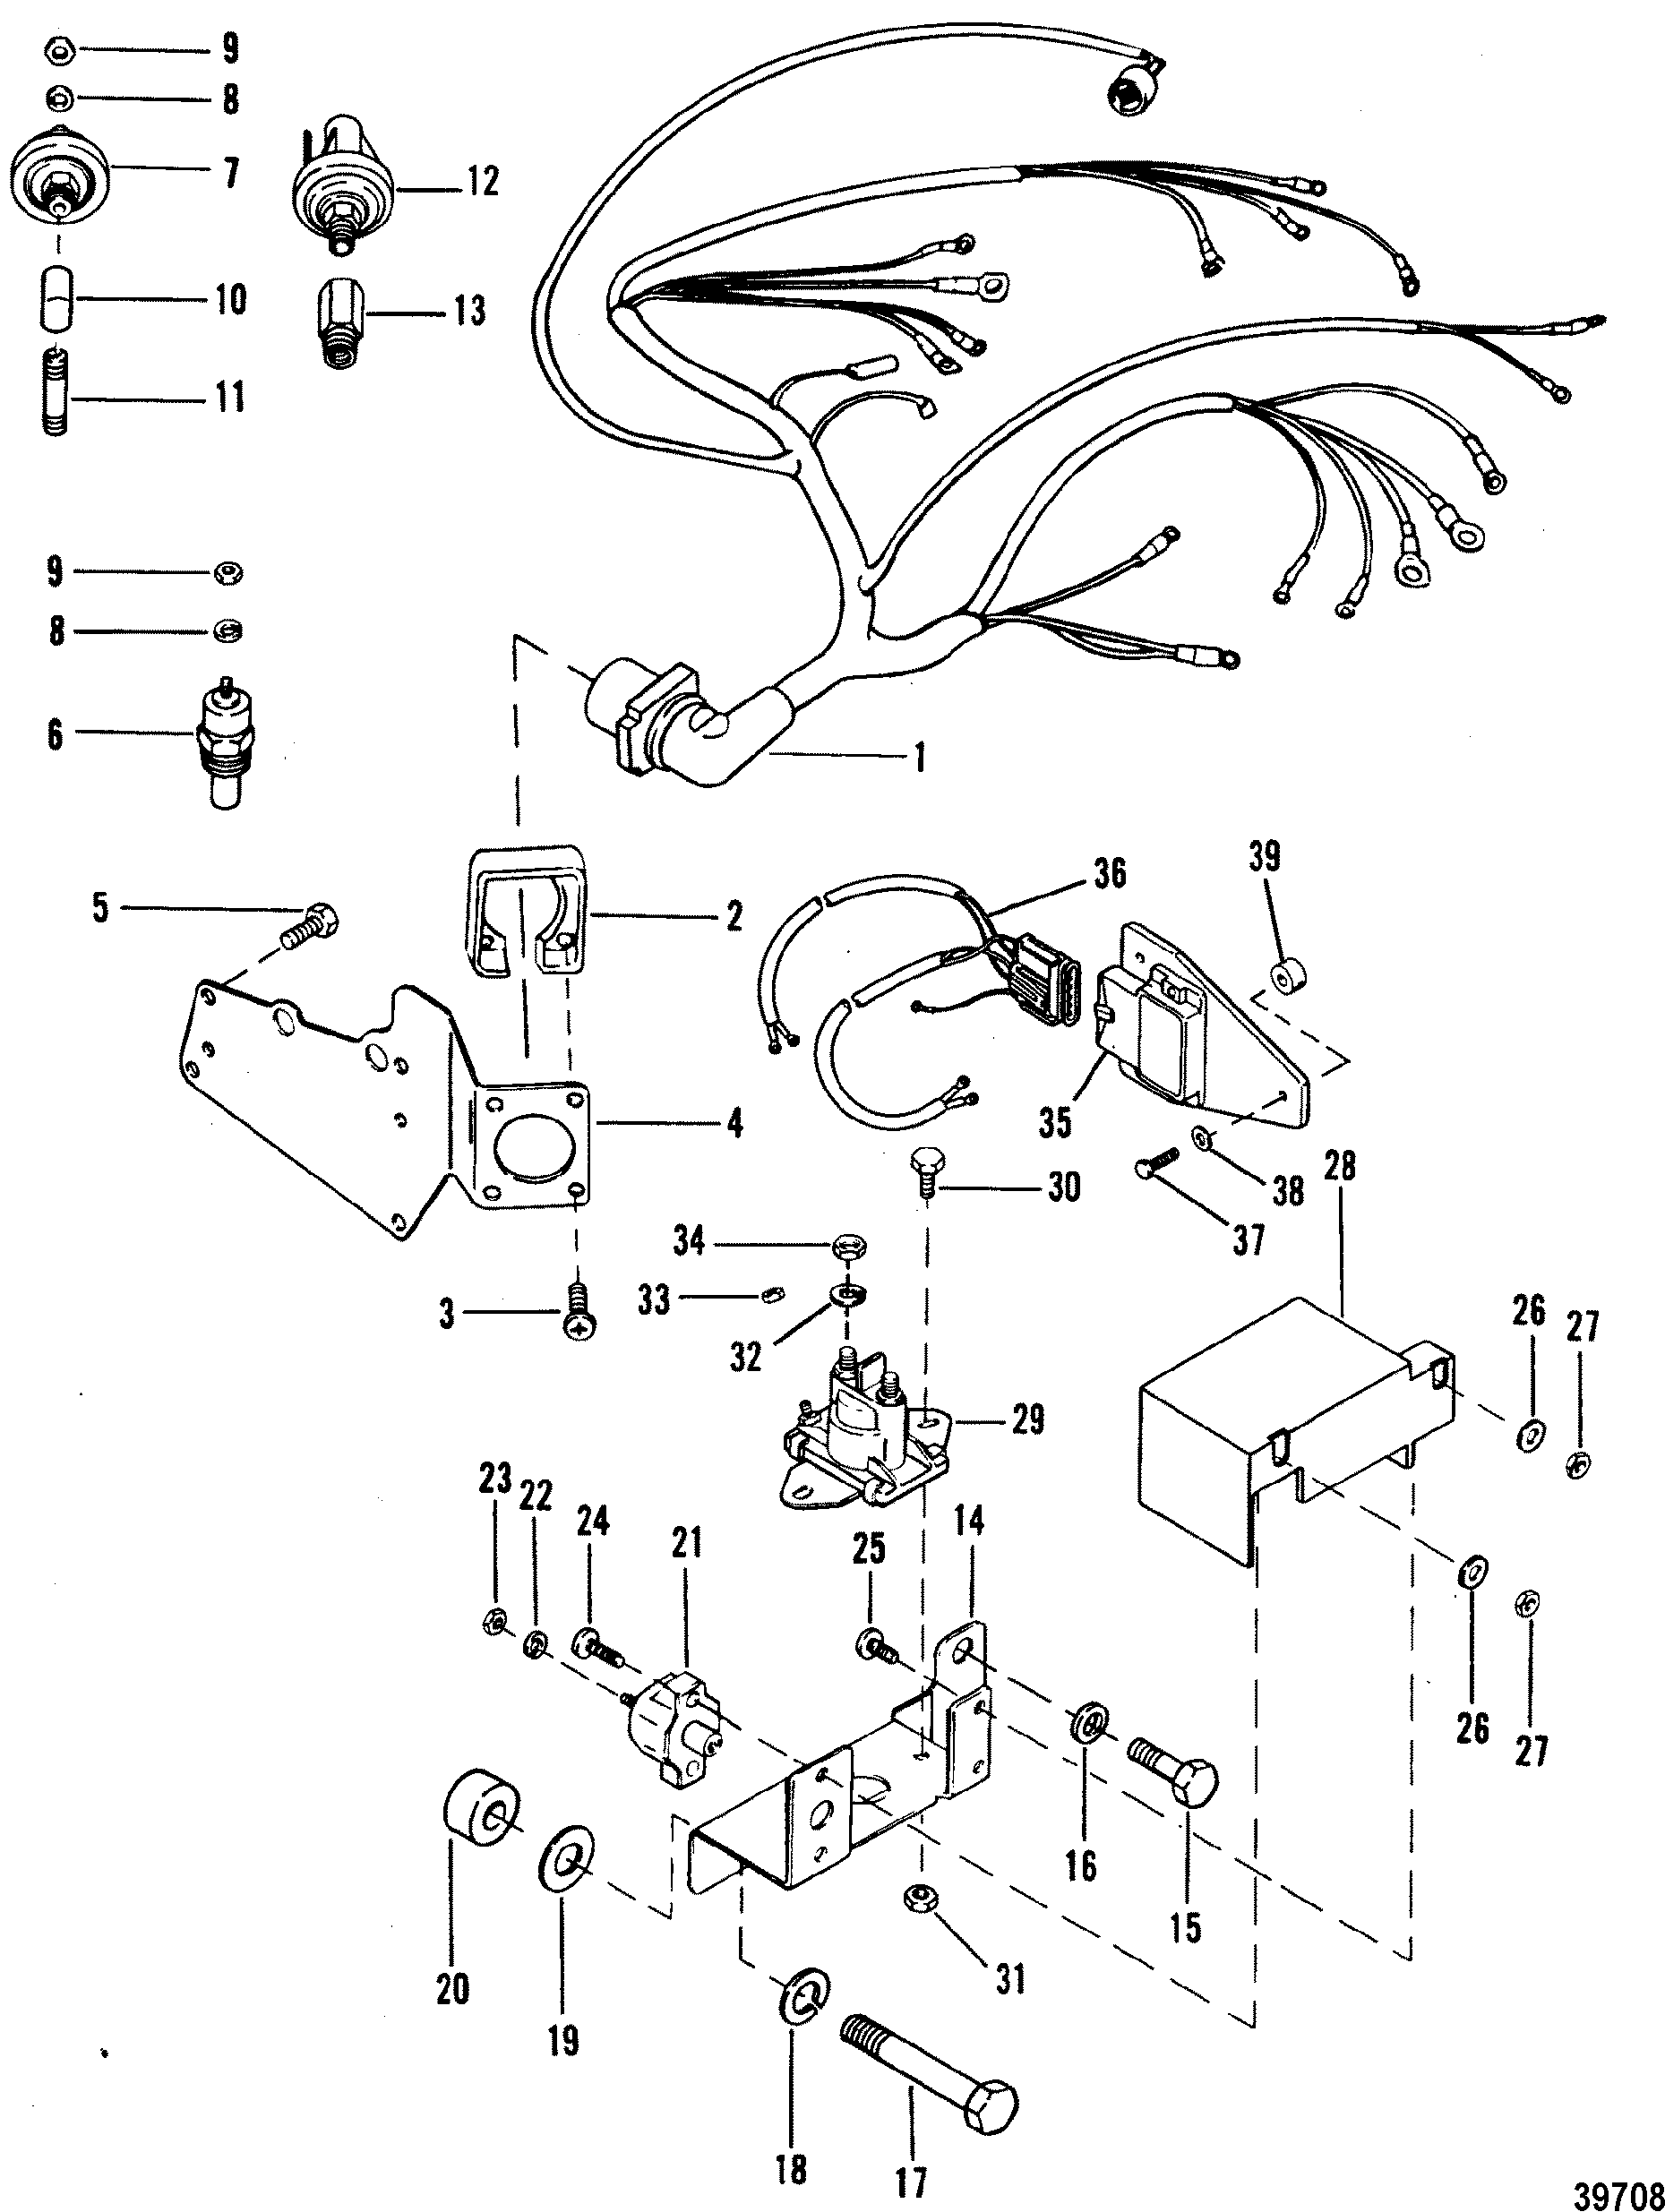 wiring harness and electrical components for mercruiser 4 3l 4 3lx rh jamestowndistributors com Ford Wiring Harness Diagrams Ford Wiring Harness Diagrams